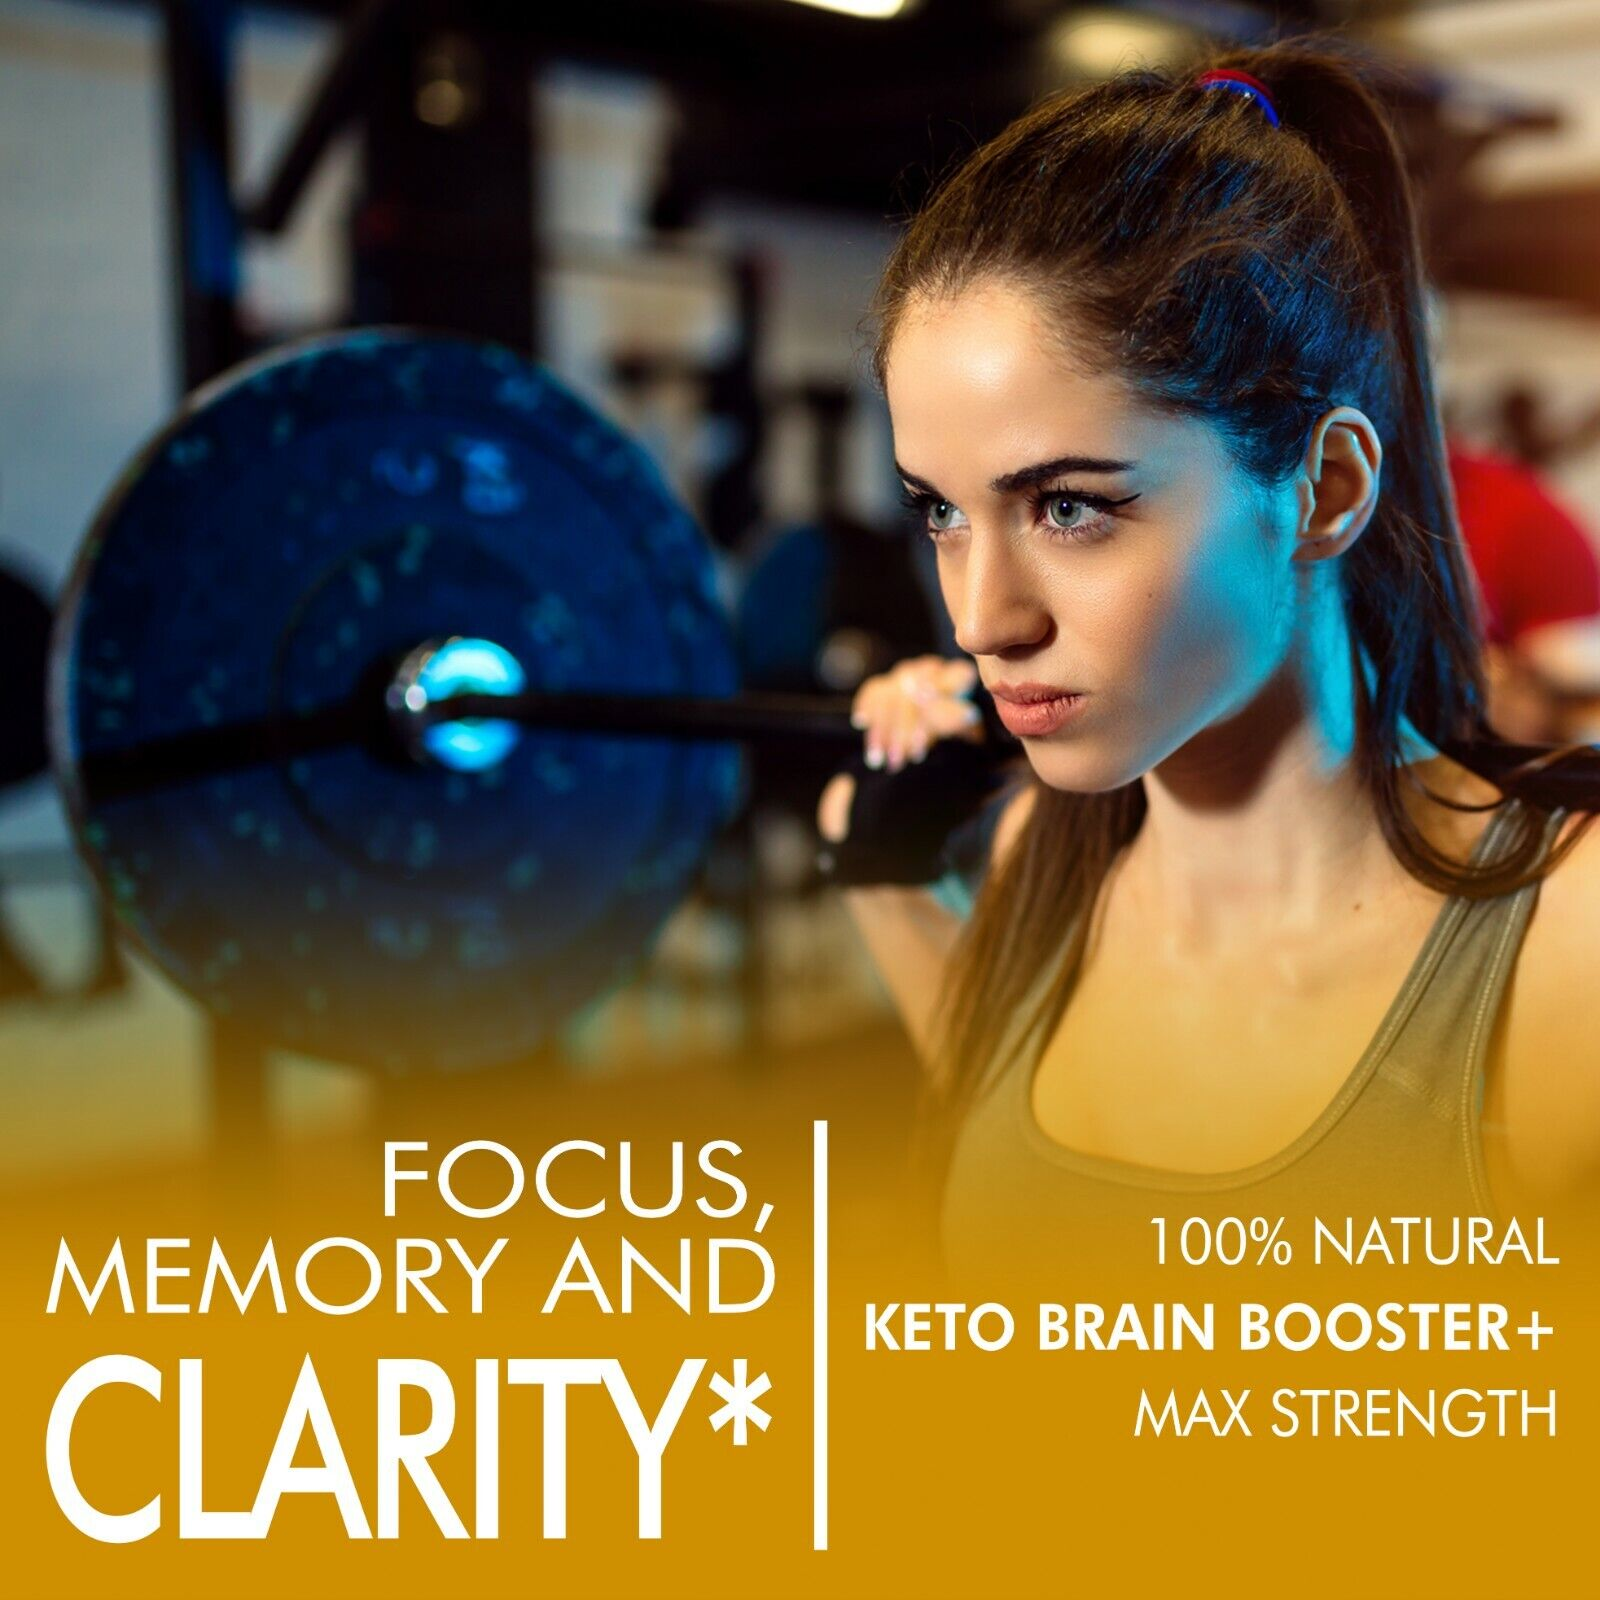 Brain Booster - Nootropic Brain Supplement - Focus, Concentration and Memory 1